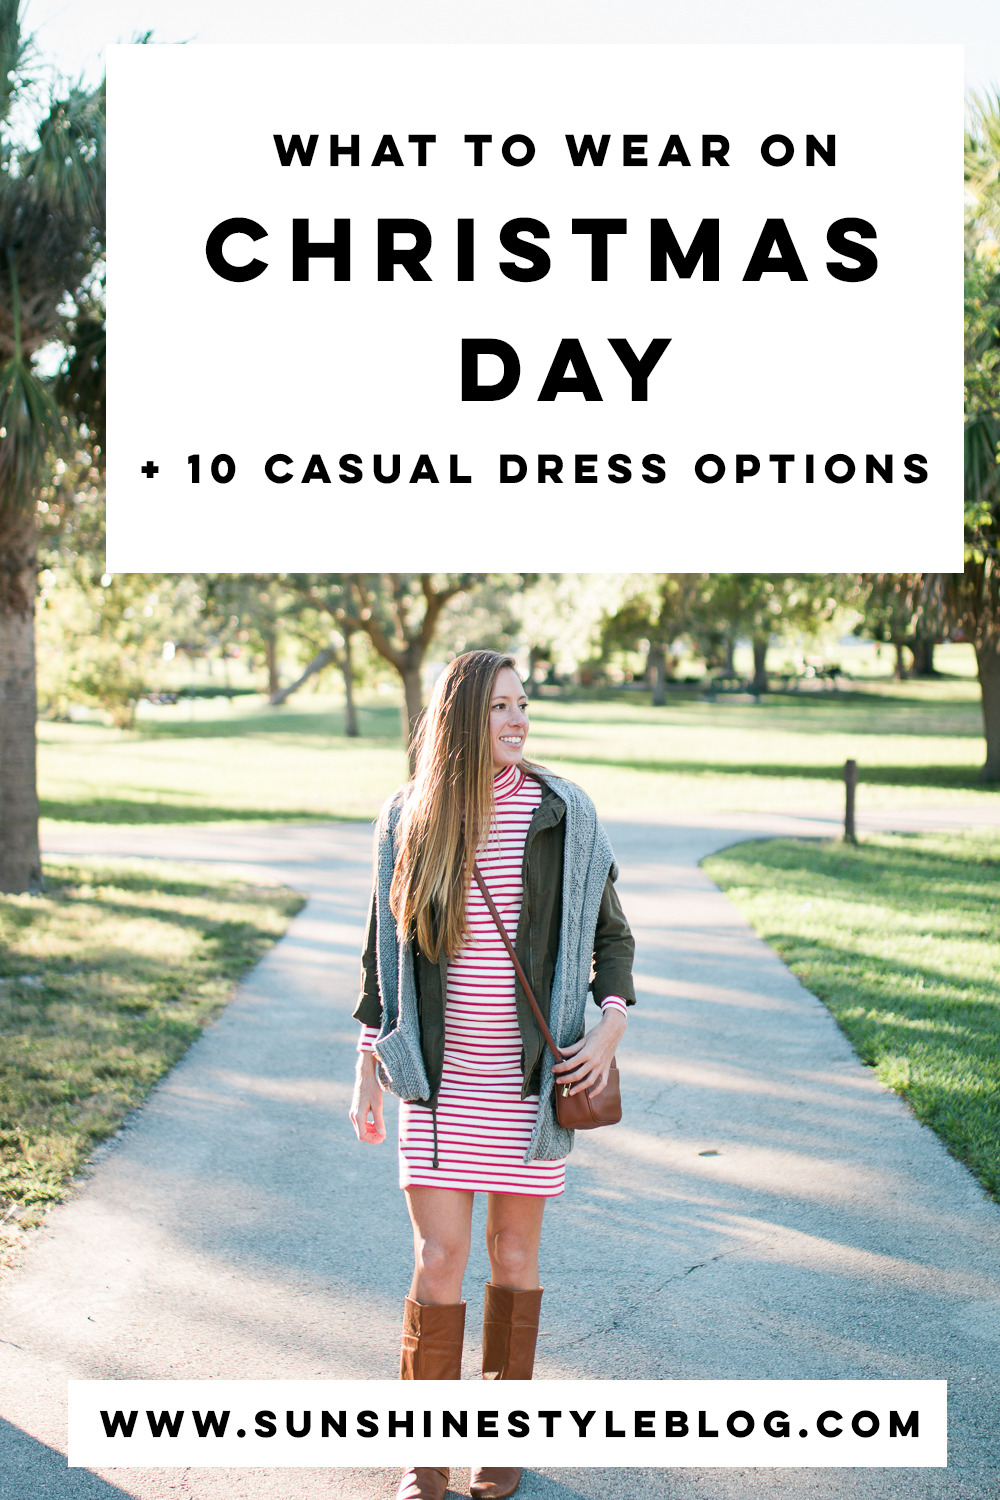 10 Casual Dress Options to Wear on Christmas Day